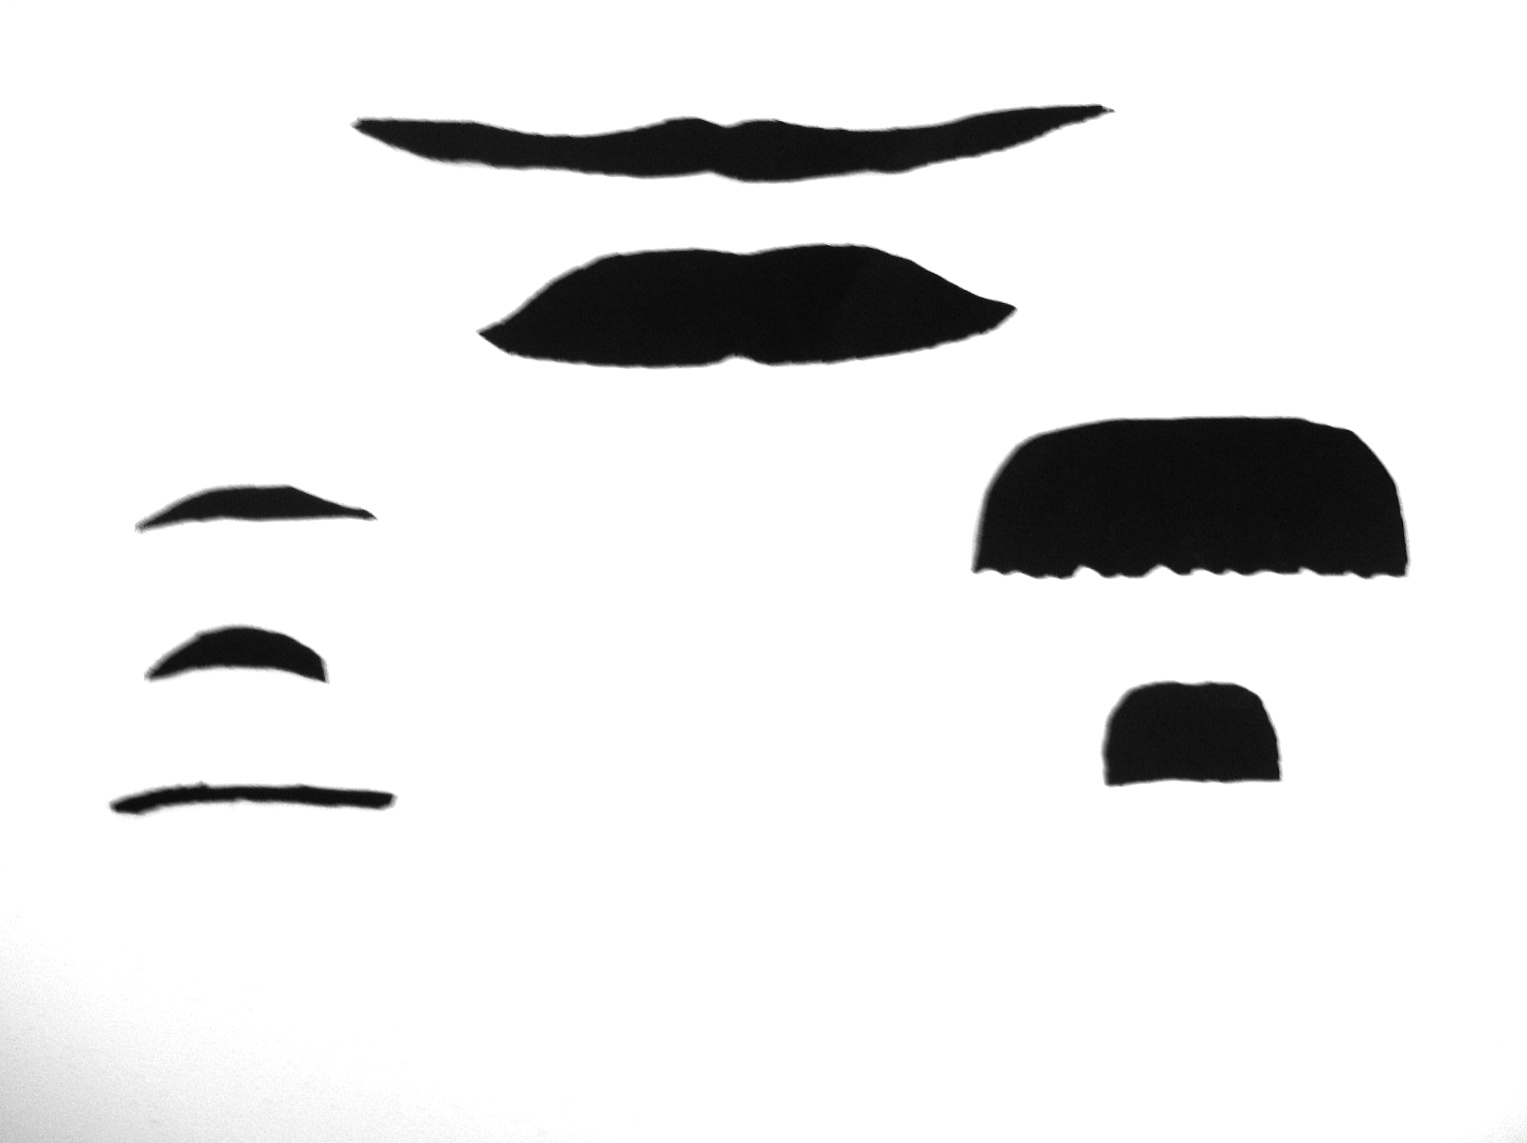 Mustache clipart toothbrush, Mustache toothbrush Transparent.